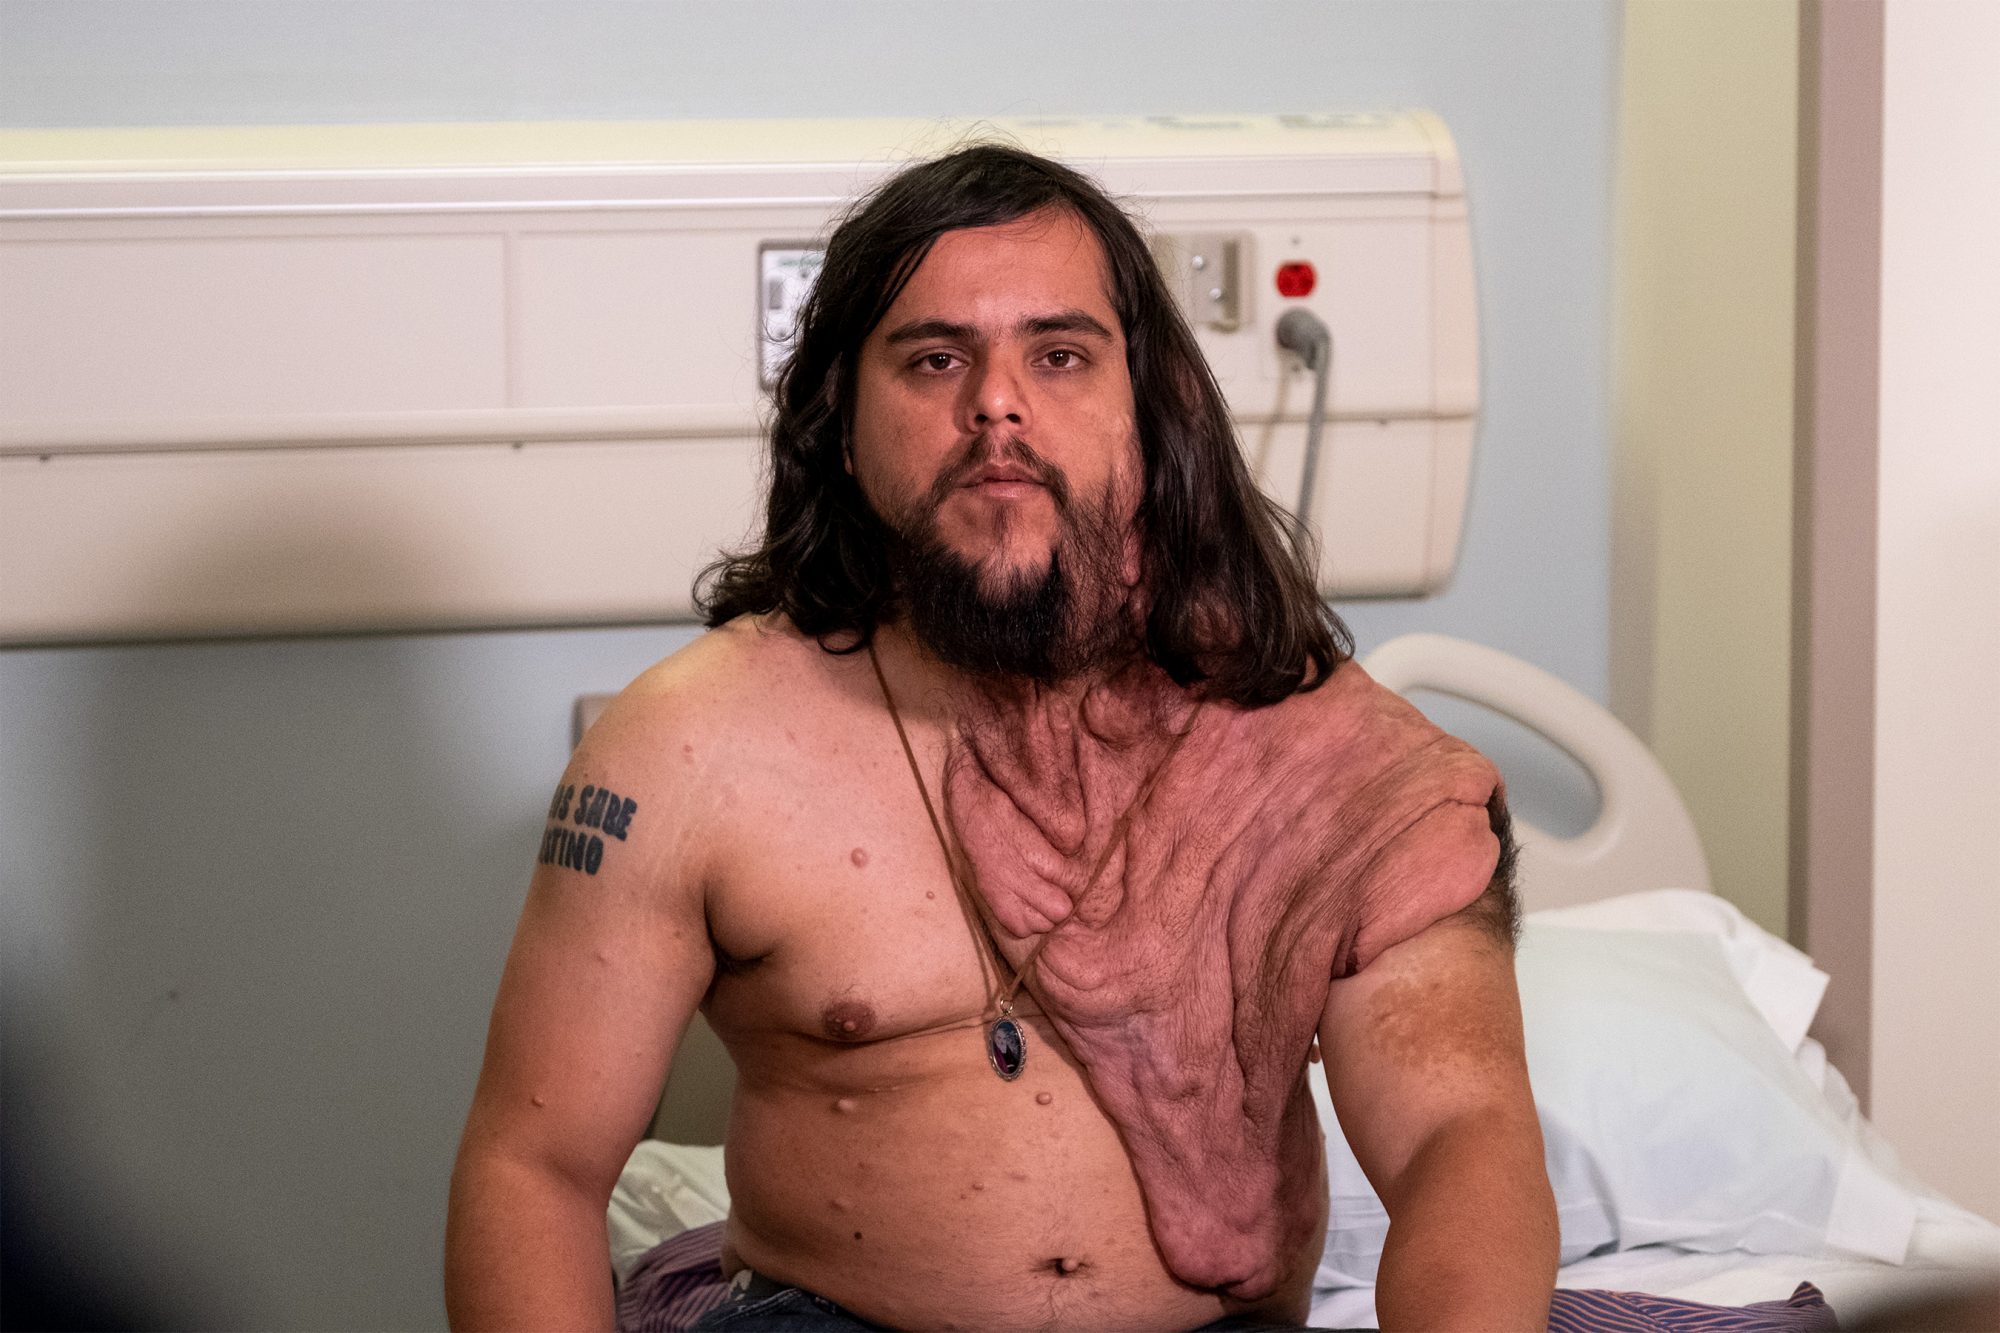 UCI DOCTORS DONATED SURGERY TO HELP PARAGUAY MAN SUFFERING FROM RARE SKIN DISORDER